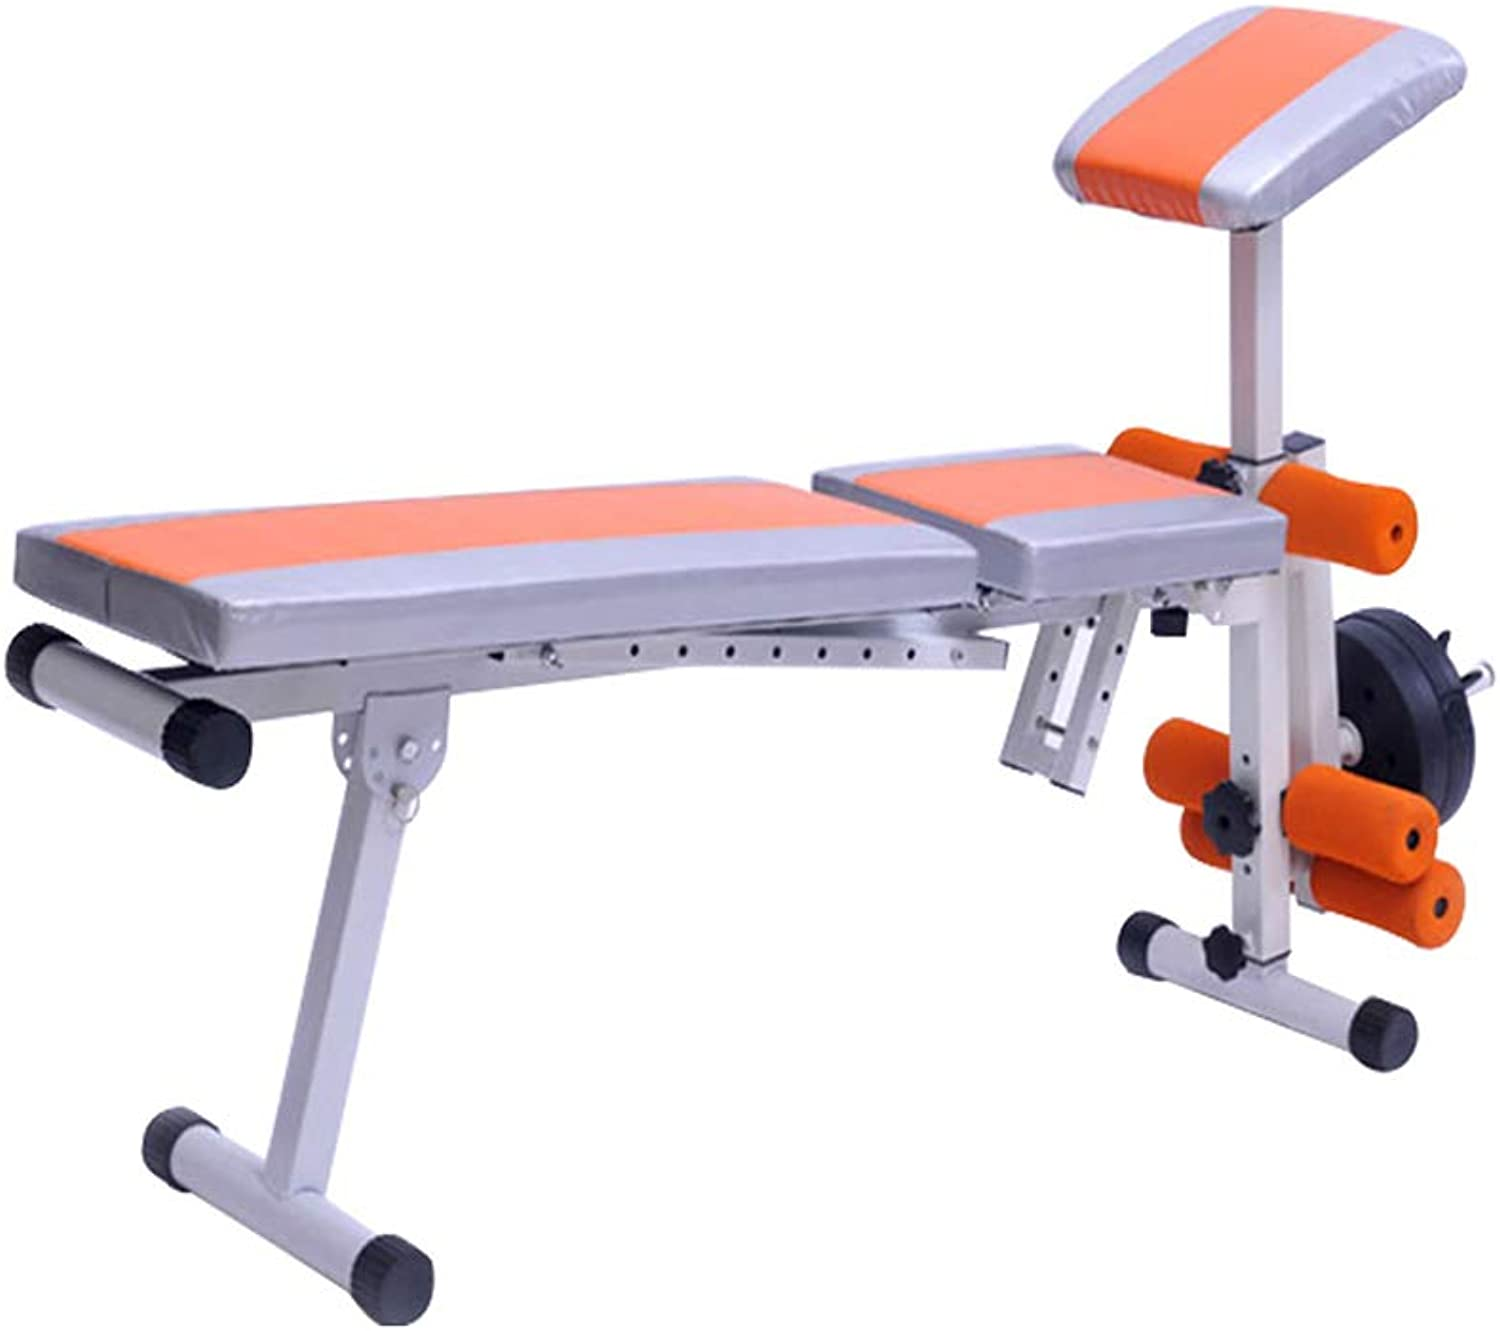 Indoor Movement Chair, for Home Use Multifunctional Ability Euphoria Warriors Abdominal Skin Board Exhortation Lifting A Healthy Body Equipment Warmth Manure Exercise Equipment